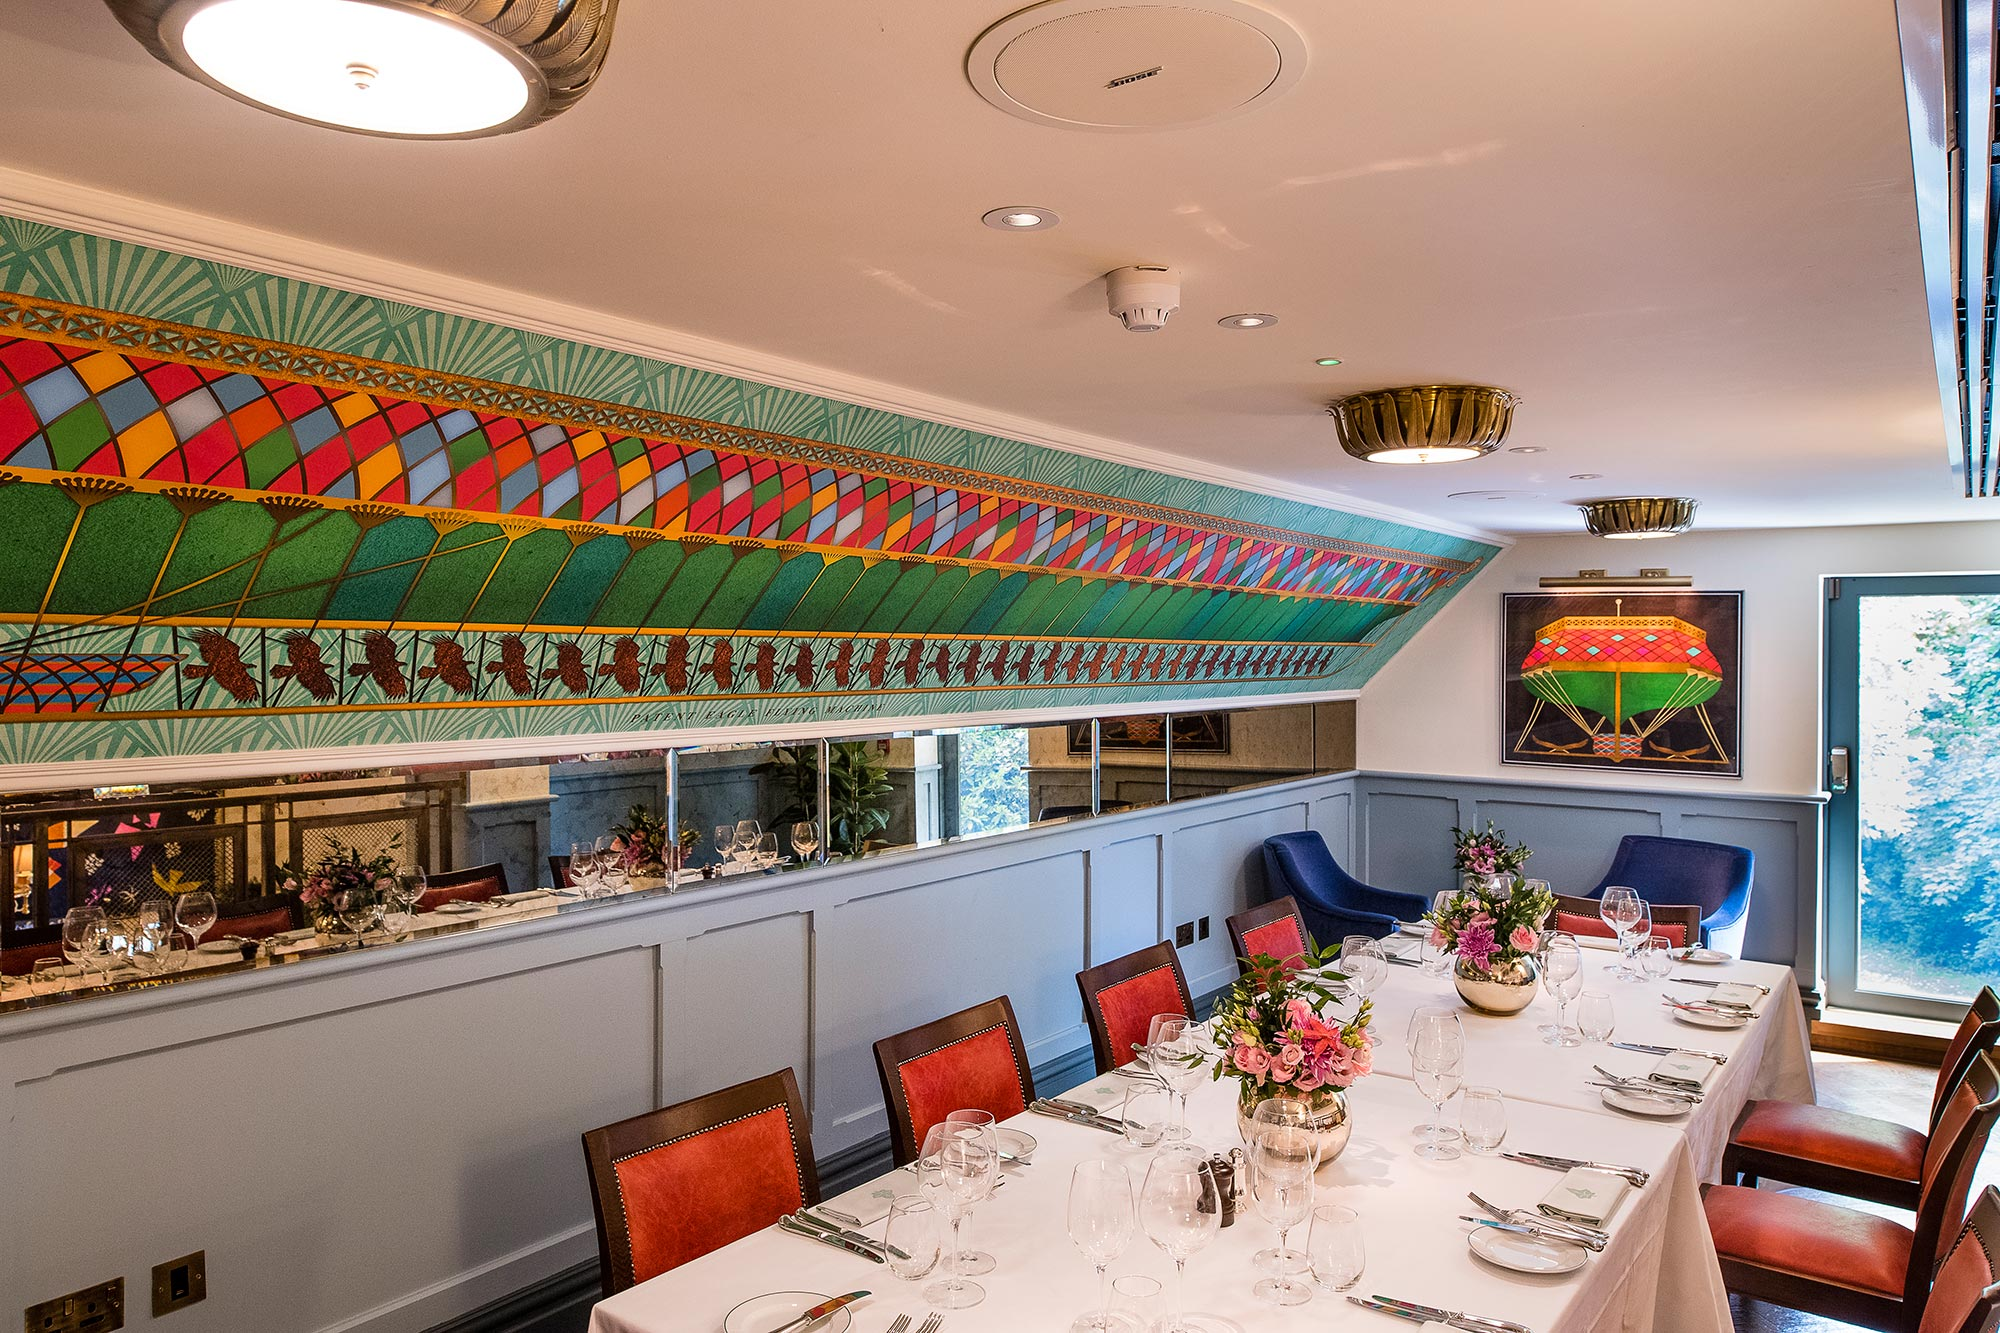 The Ivy Cobham Brasserie - corporate lunch - The Ivy Cobham Brasserie